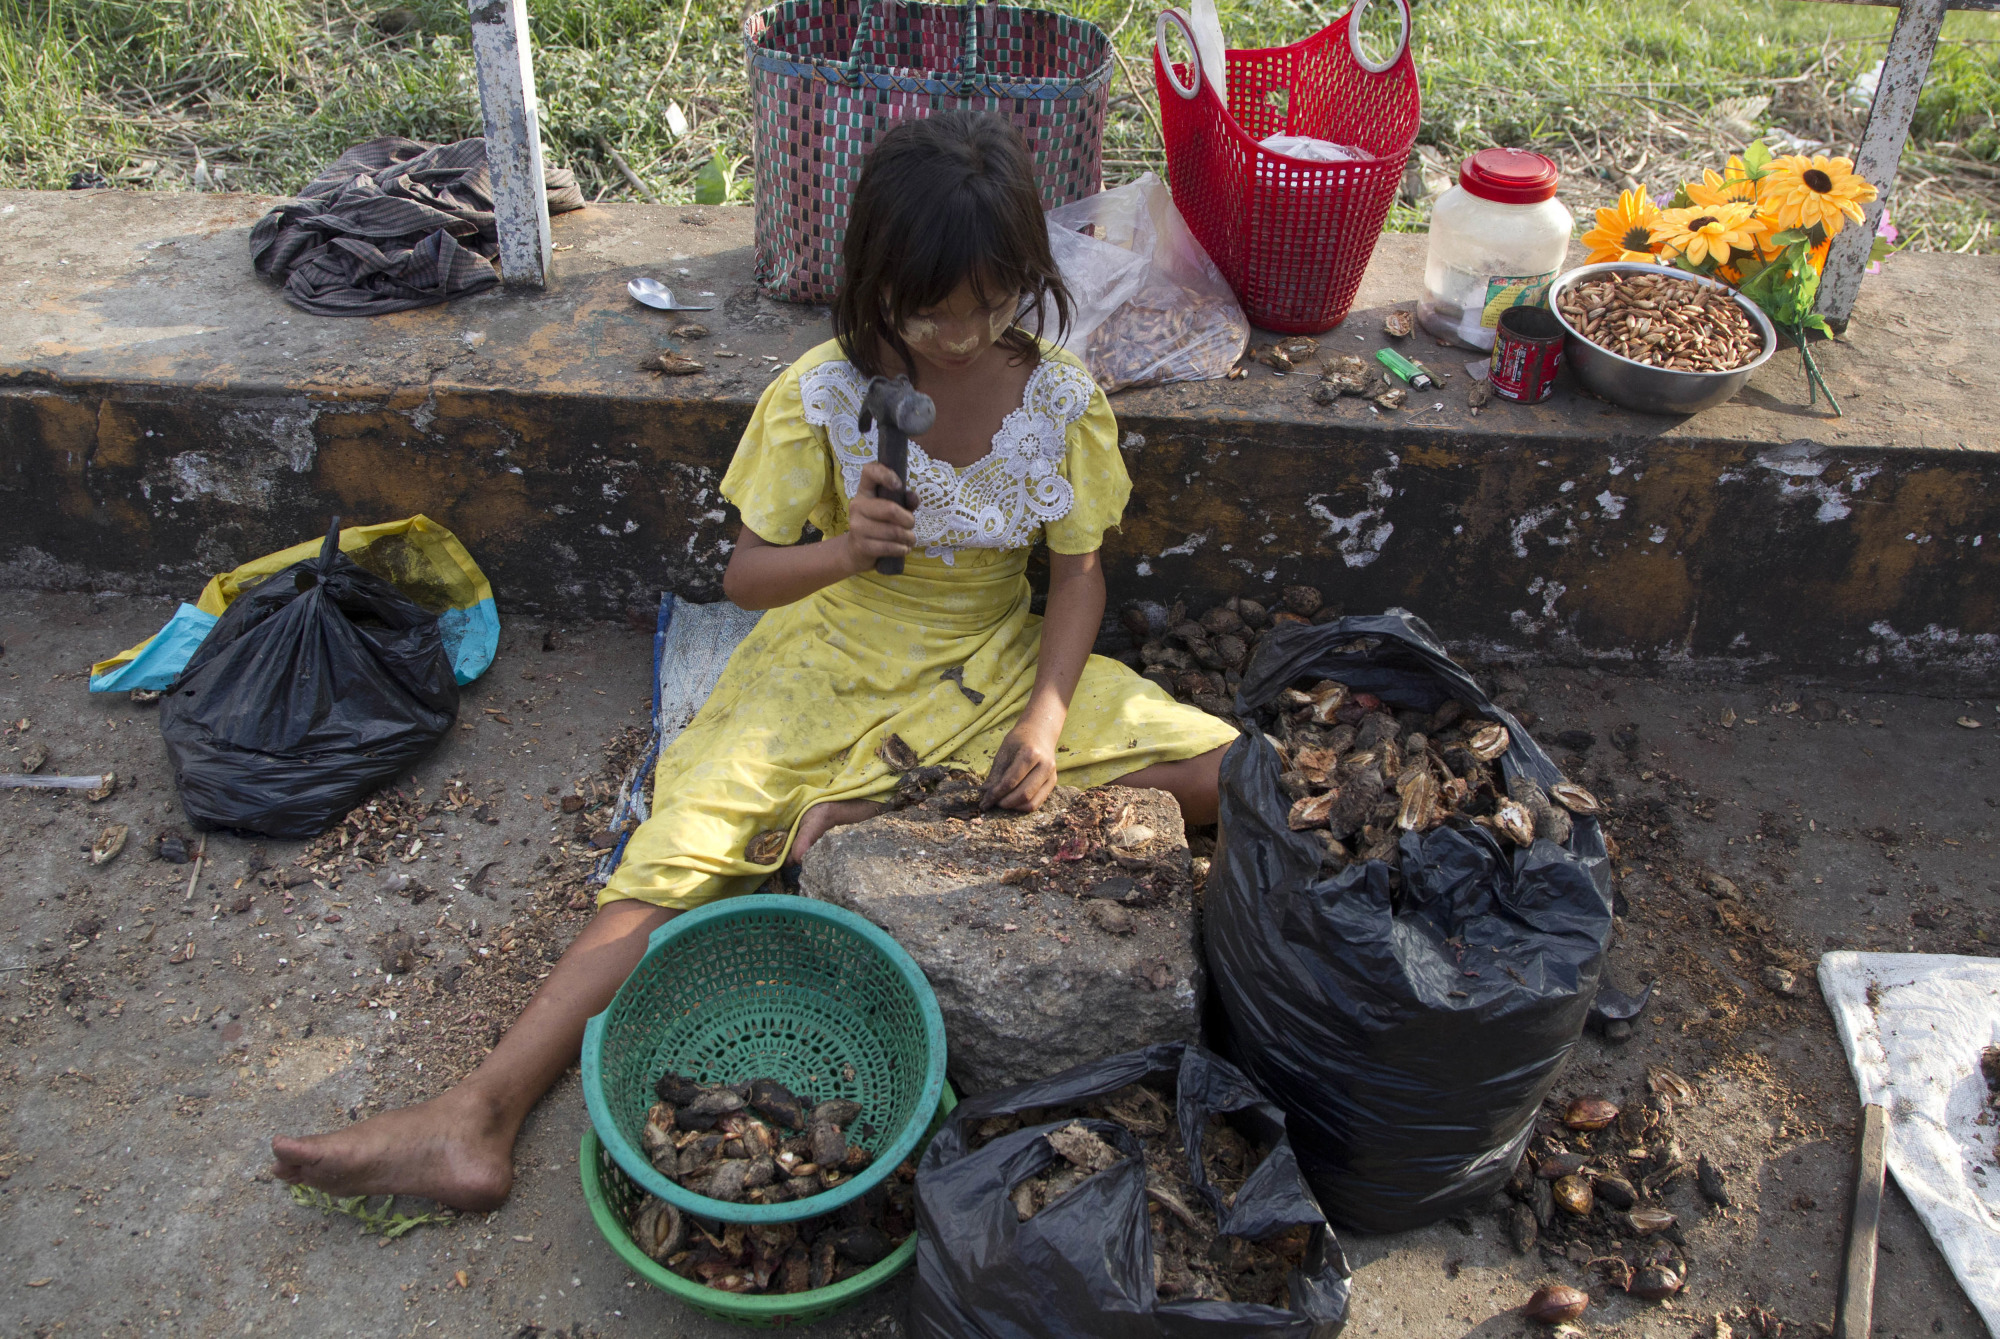 A girl uses a hammer to crack open shells and sell the seeds as snacks in Yangon on Thursday.   AP